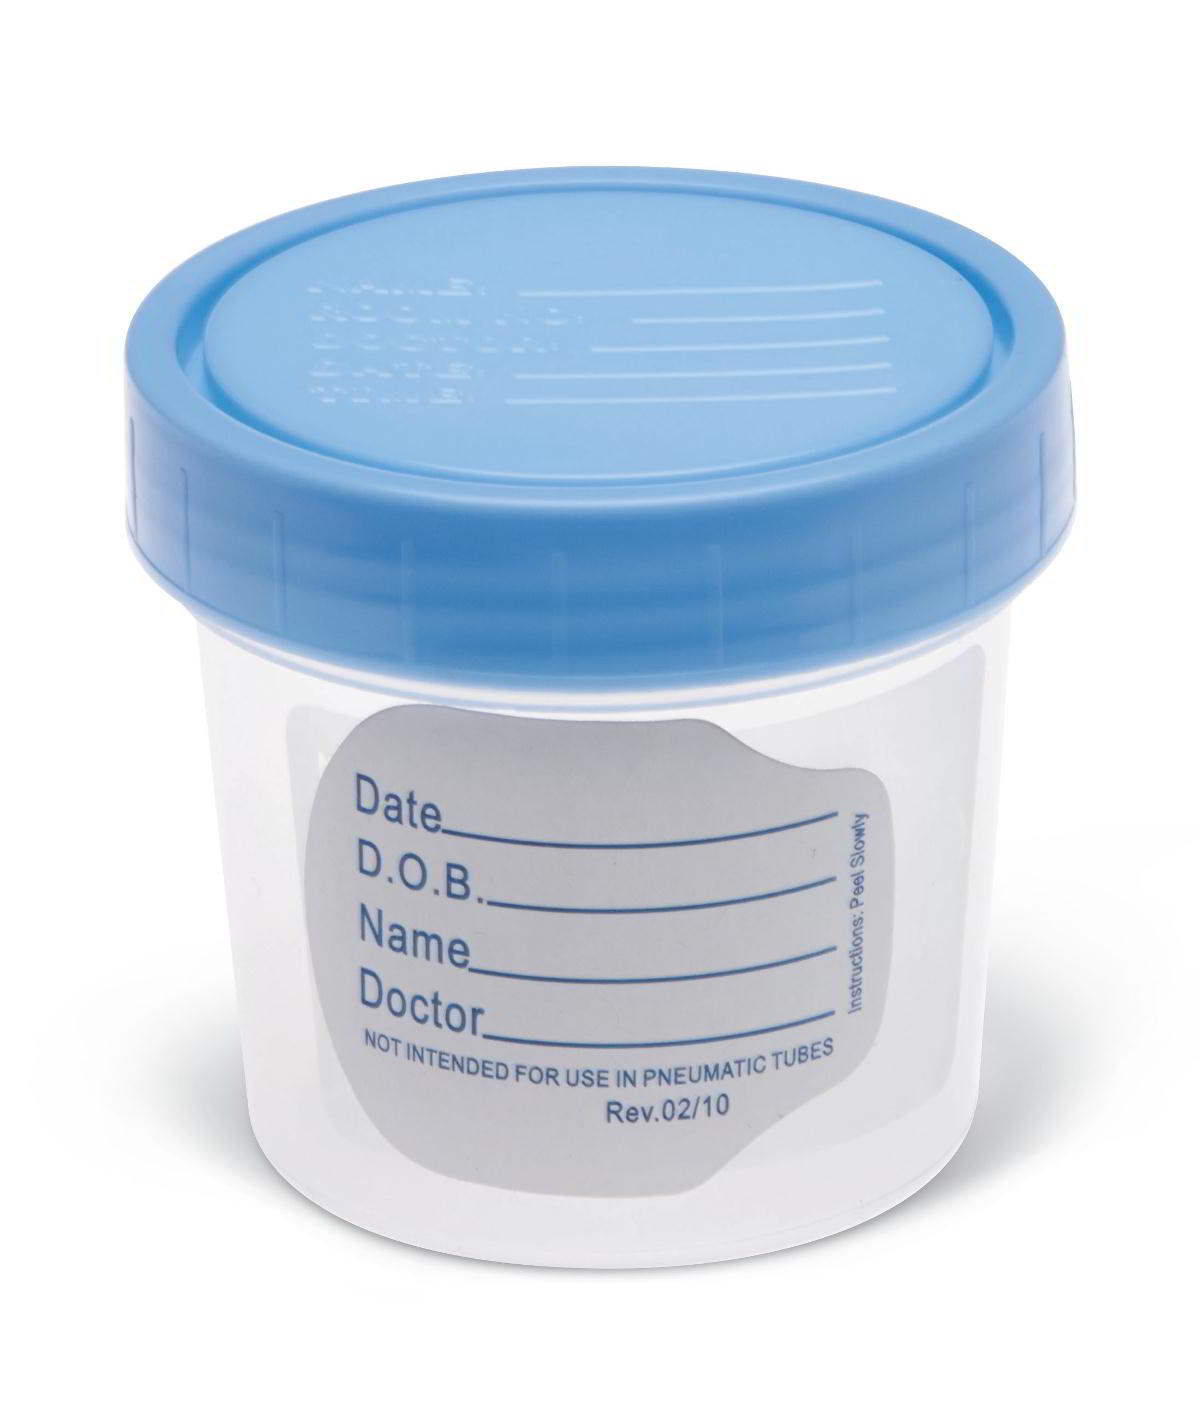 Basic Specimen Containers